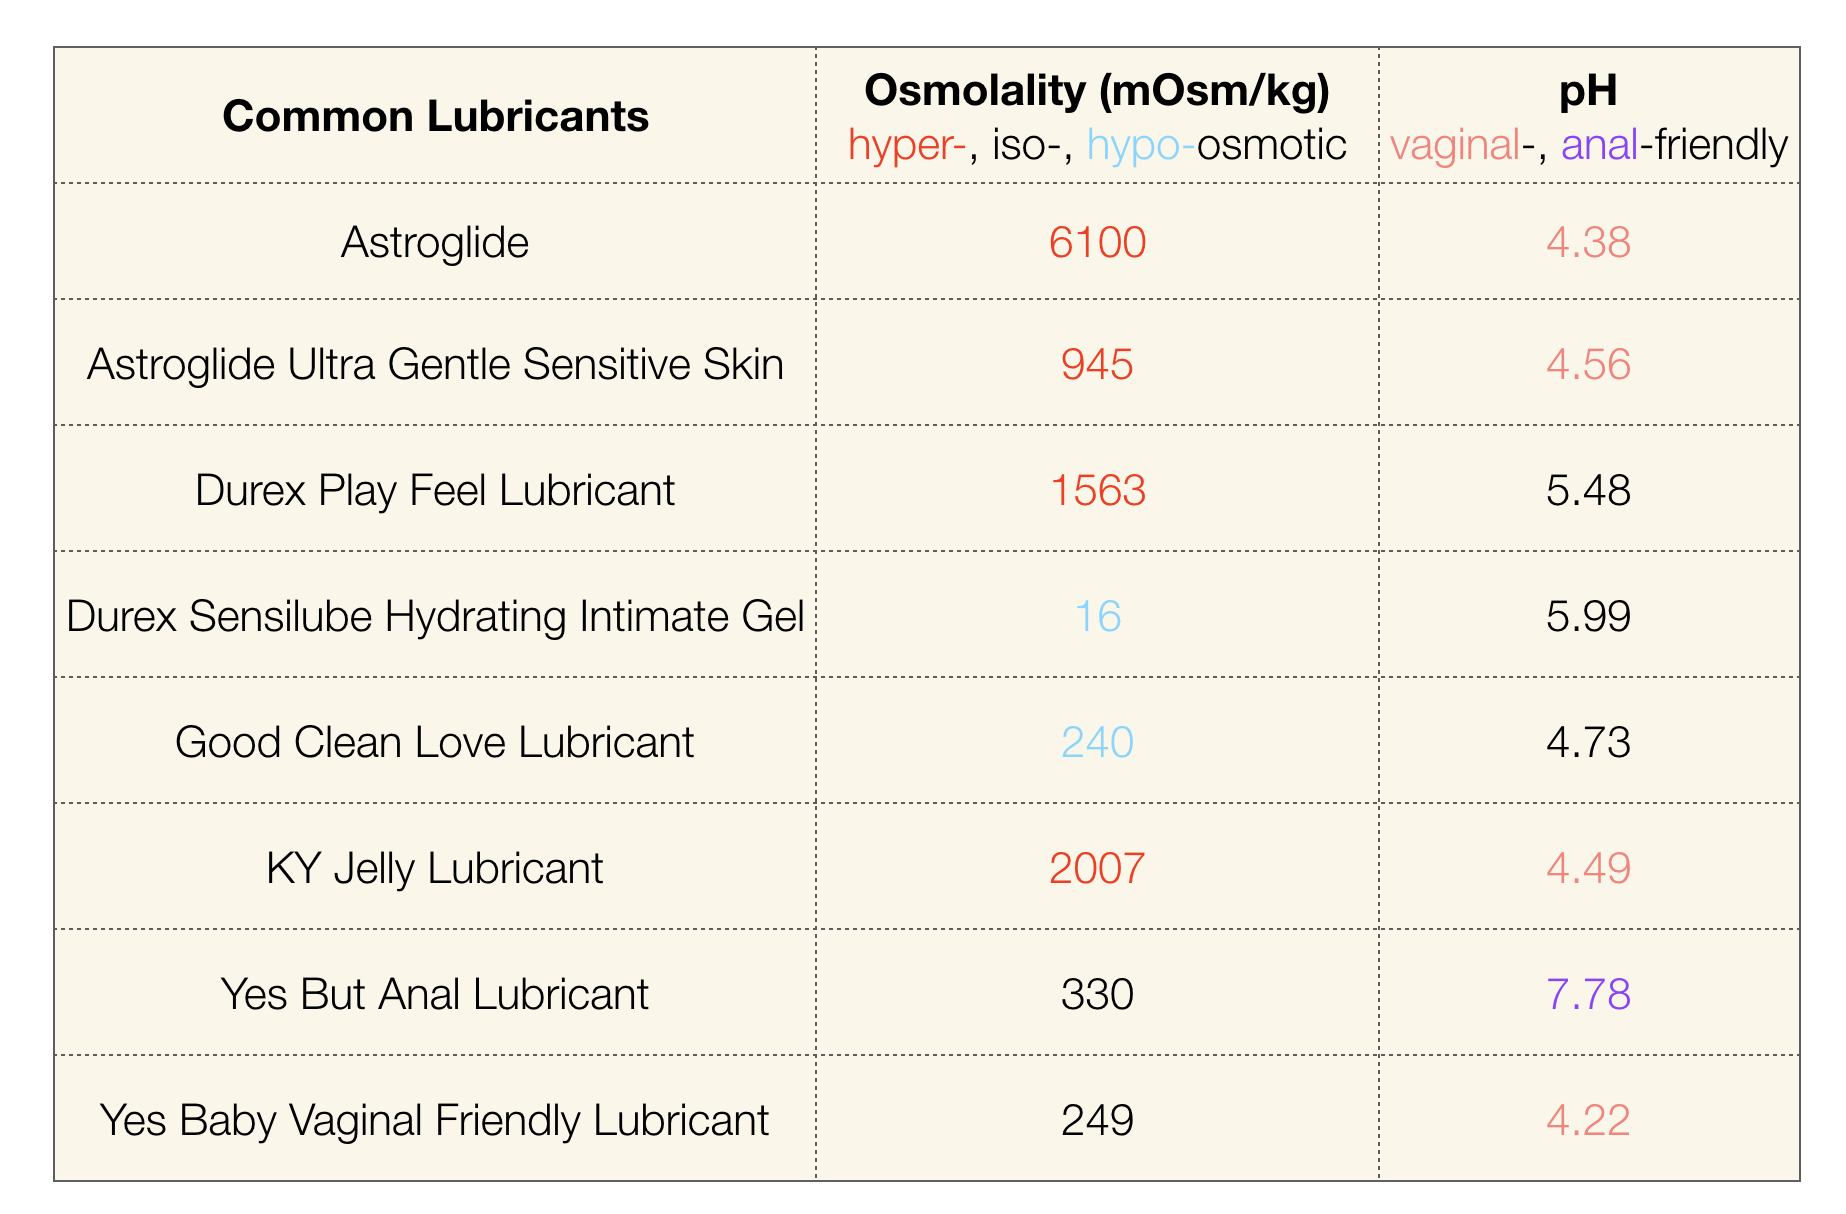 A chart detailing common lubricants and their osmolality as well as their pH, and whether the pH is vaginal- or anal-friendly.